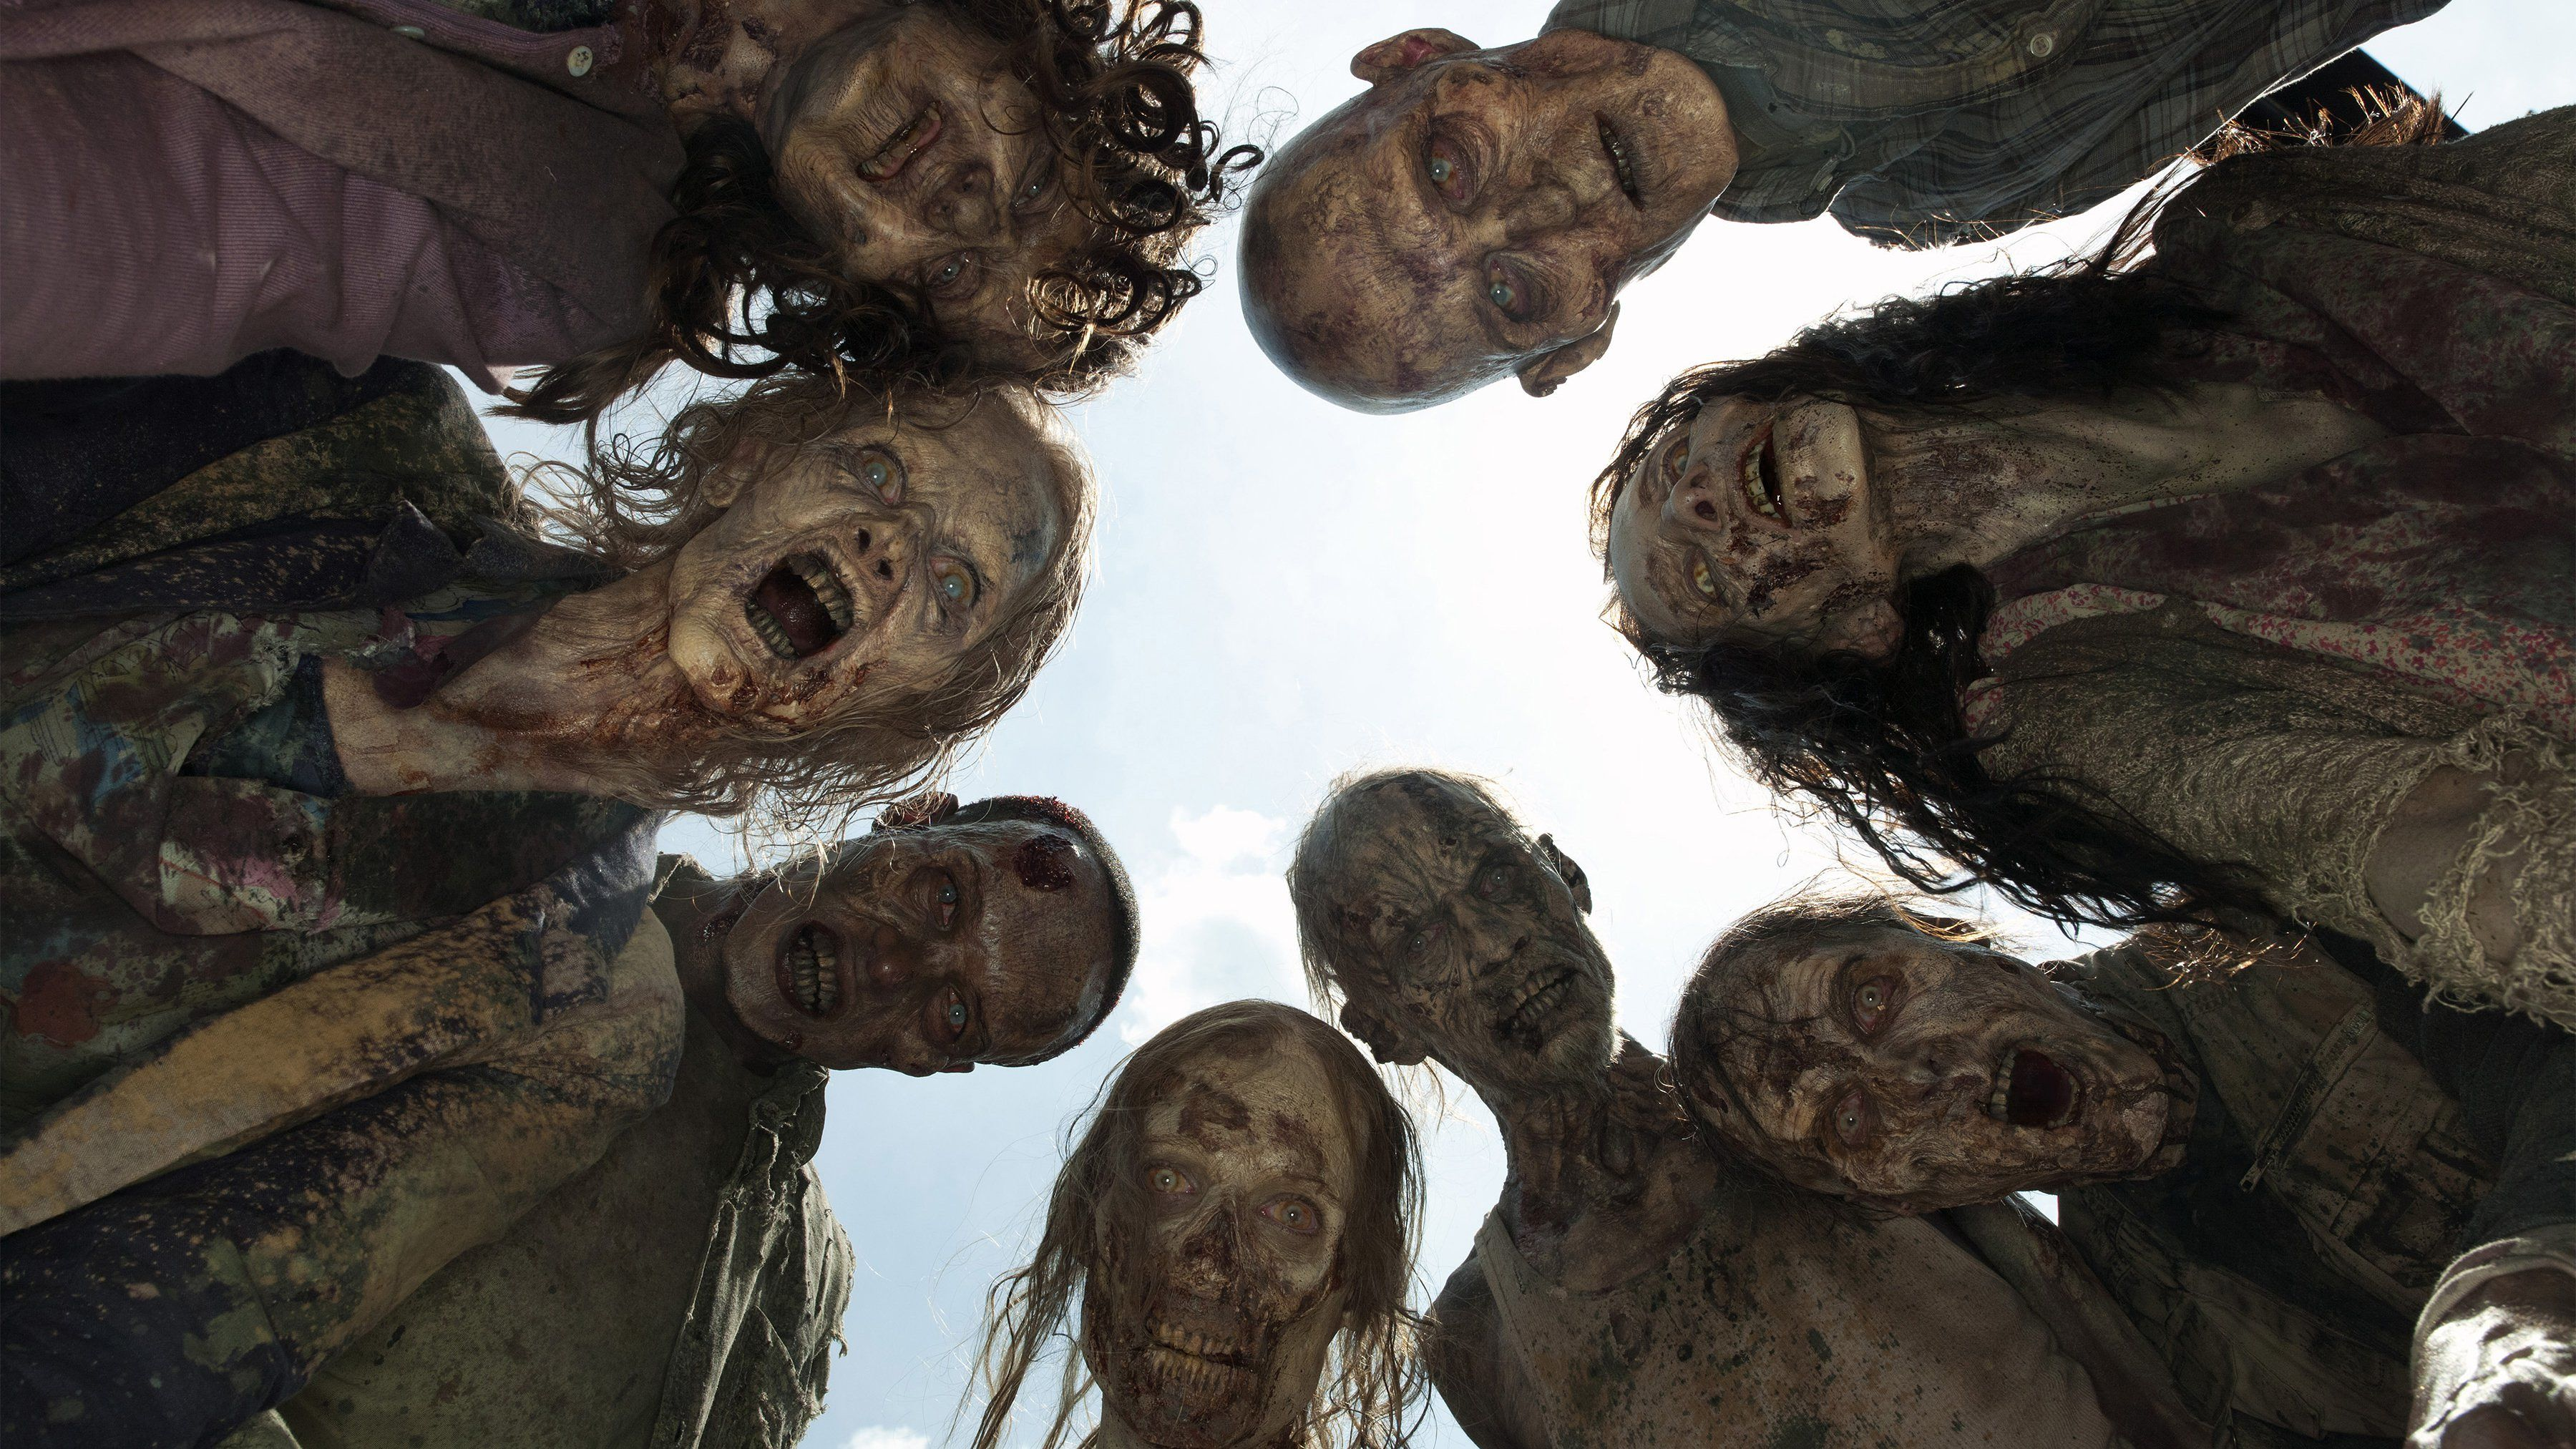 create-your-own-zombie-adventure-could-you-survive-the-zombie-apocalypse-590087